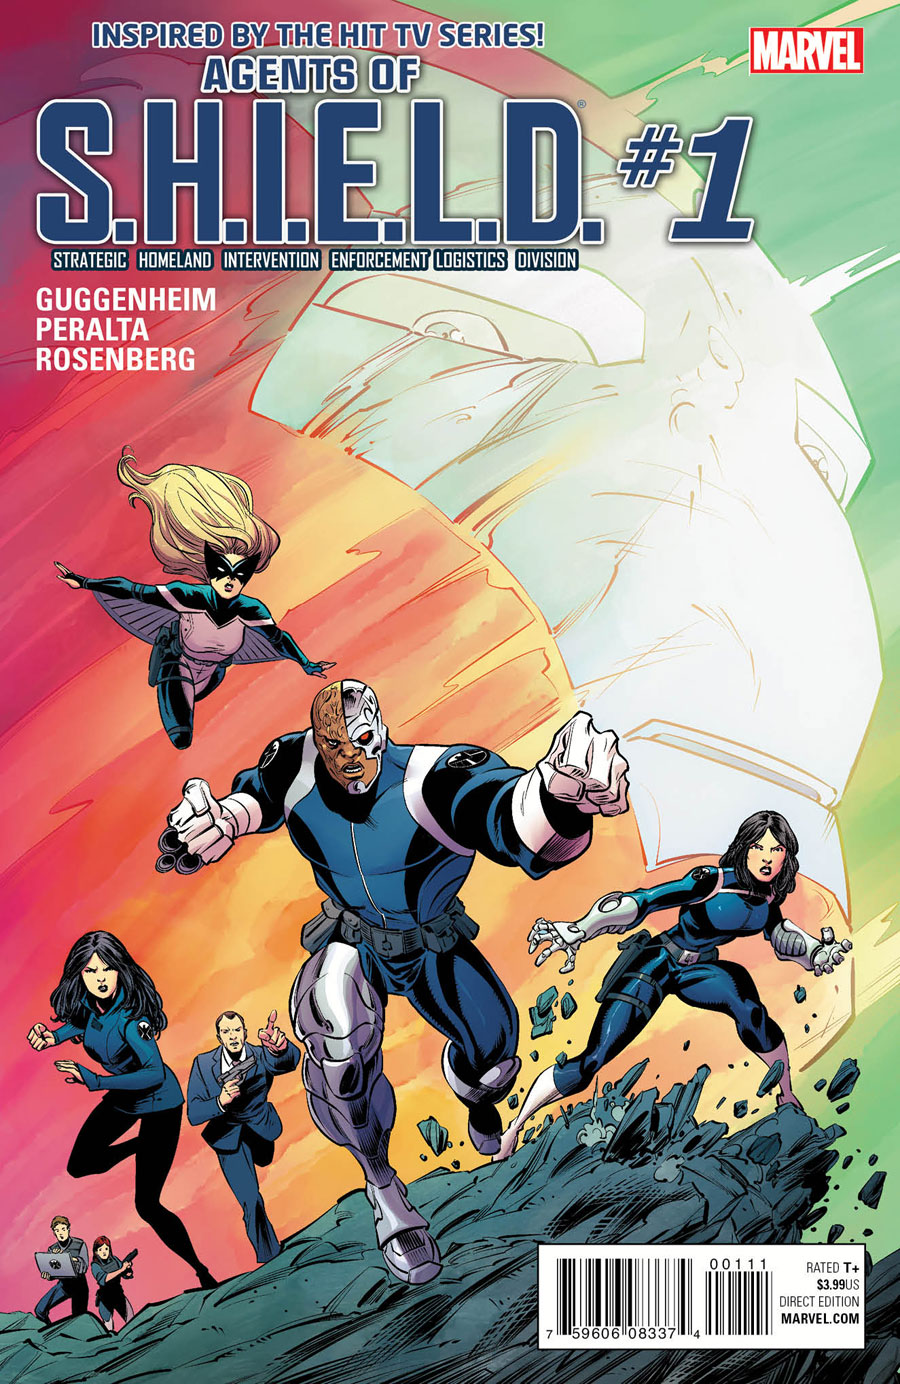 Agents of S.H.I.E.L.D. TPB Vol 1 1: The Coulson Protocols